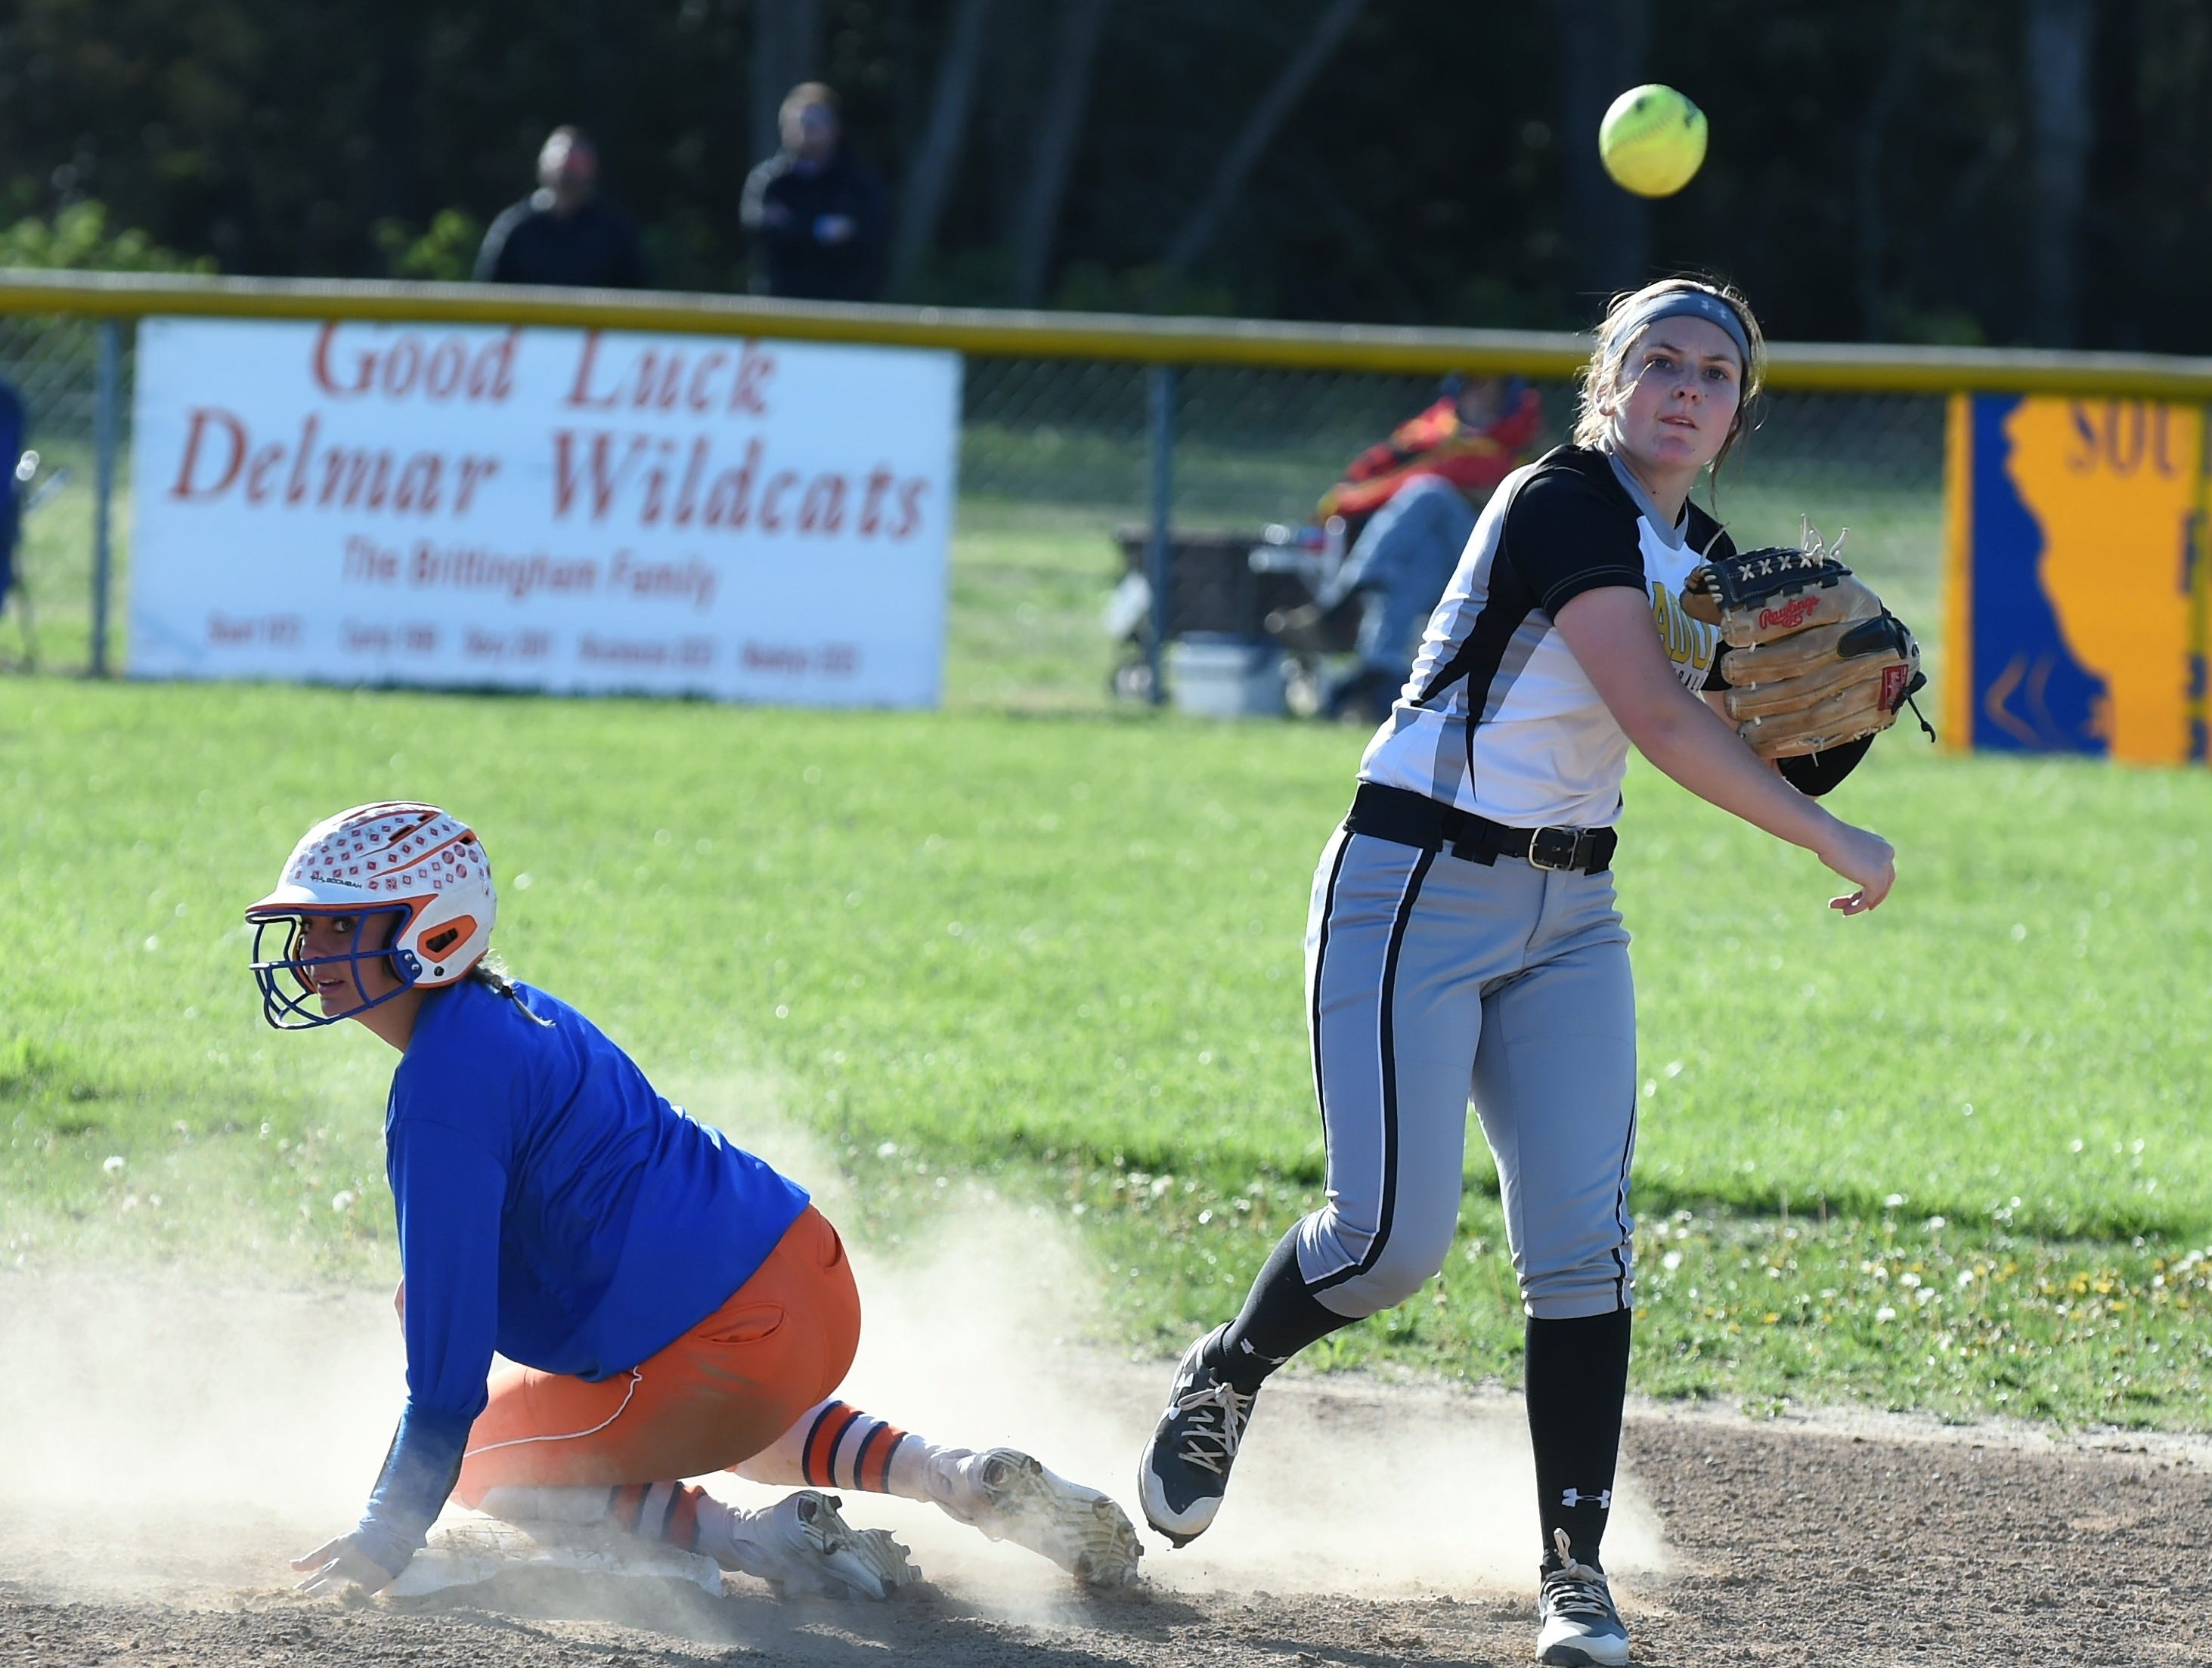 Padua's Caitlin Donnelly throws to first as a Delmar runner slides into second on Monday, April 15, 2019. The Wildcats defeated Padua Academy, 6-2.